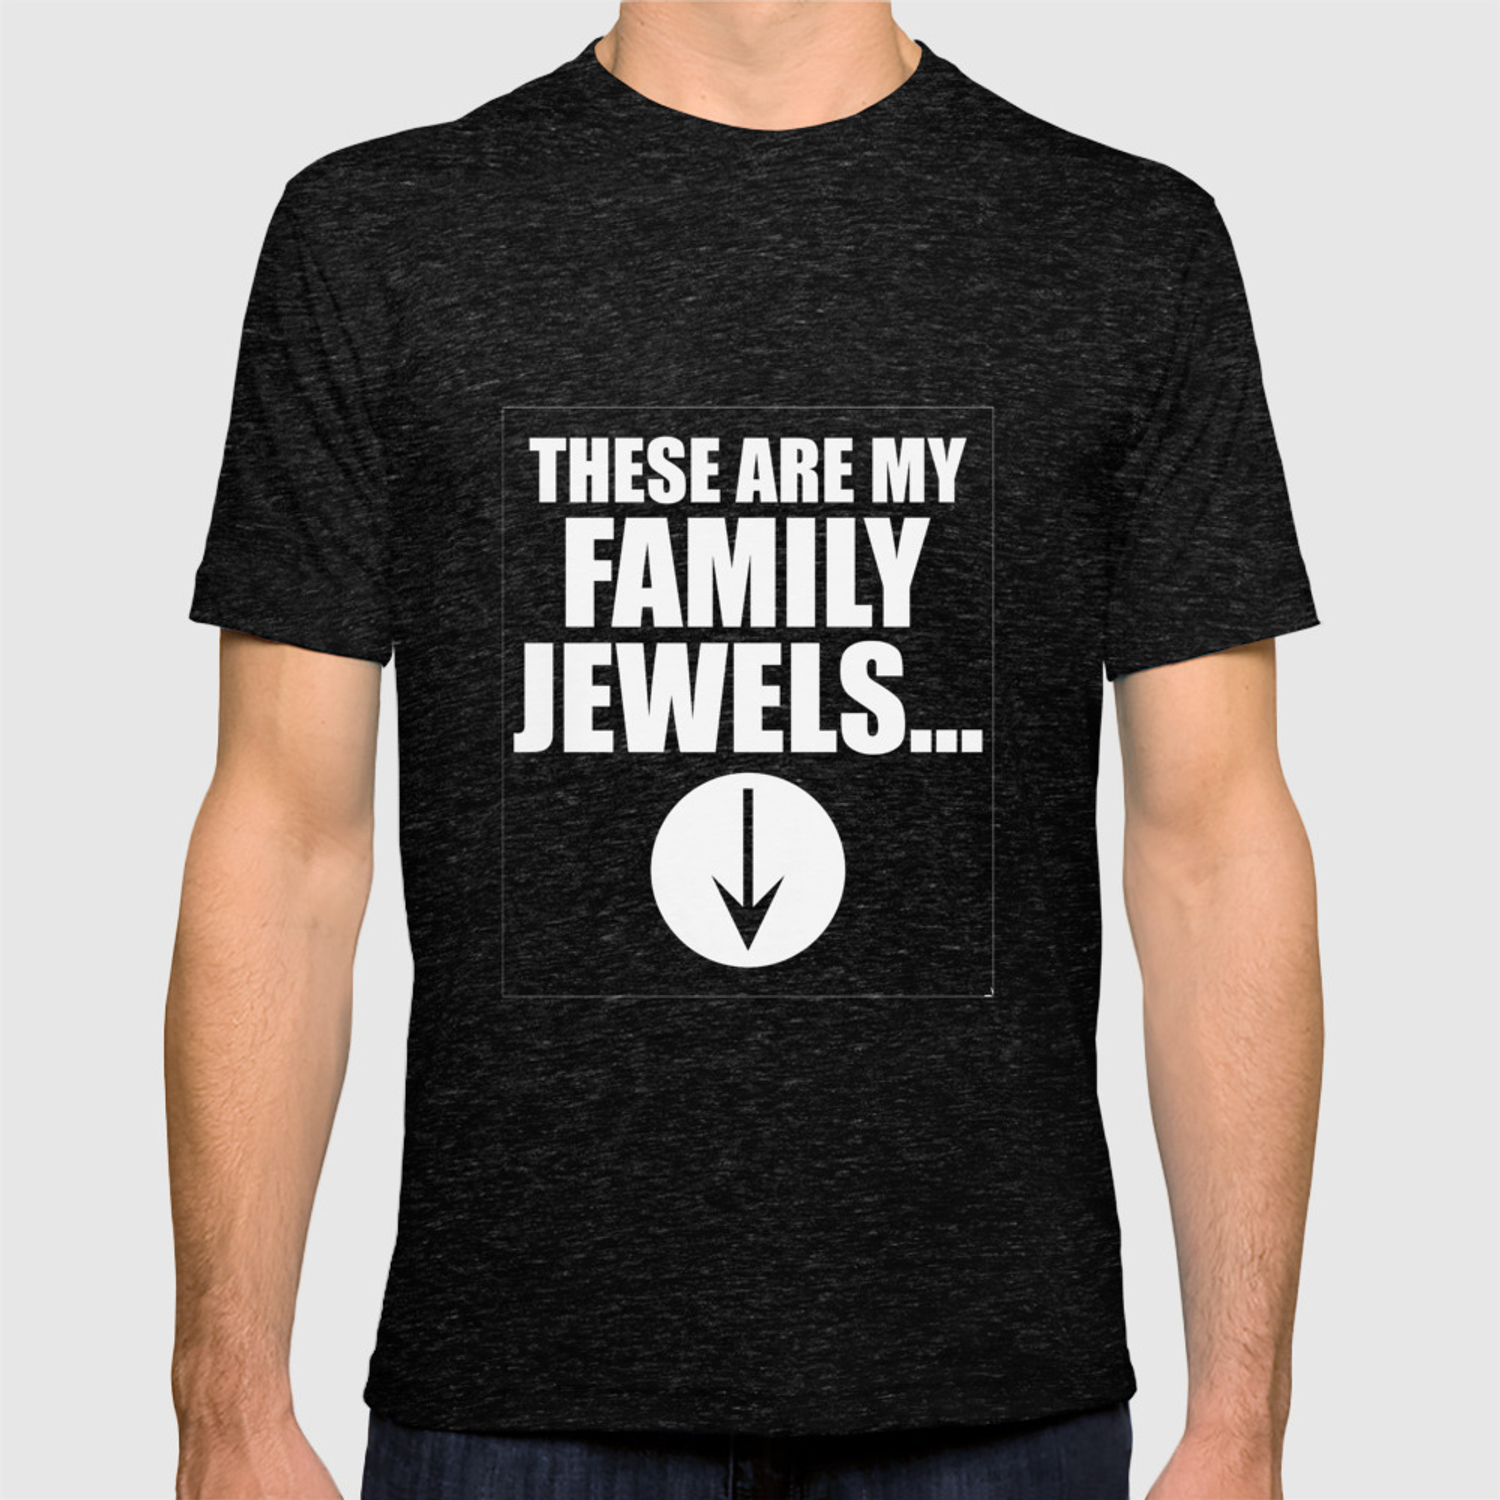 a71cdef4 These are My Family Jewels Inappropriate T-Shirt T-shirt by thewrightsales  | Society6